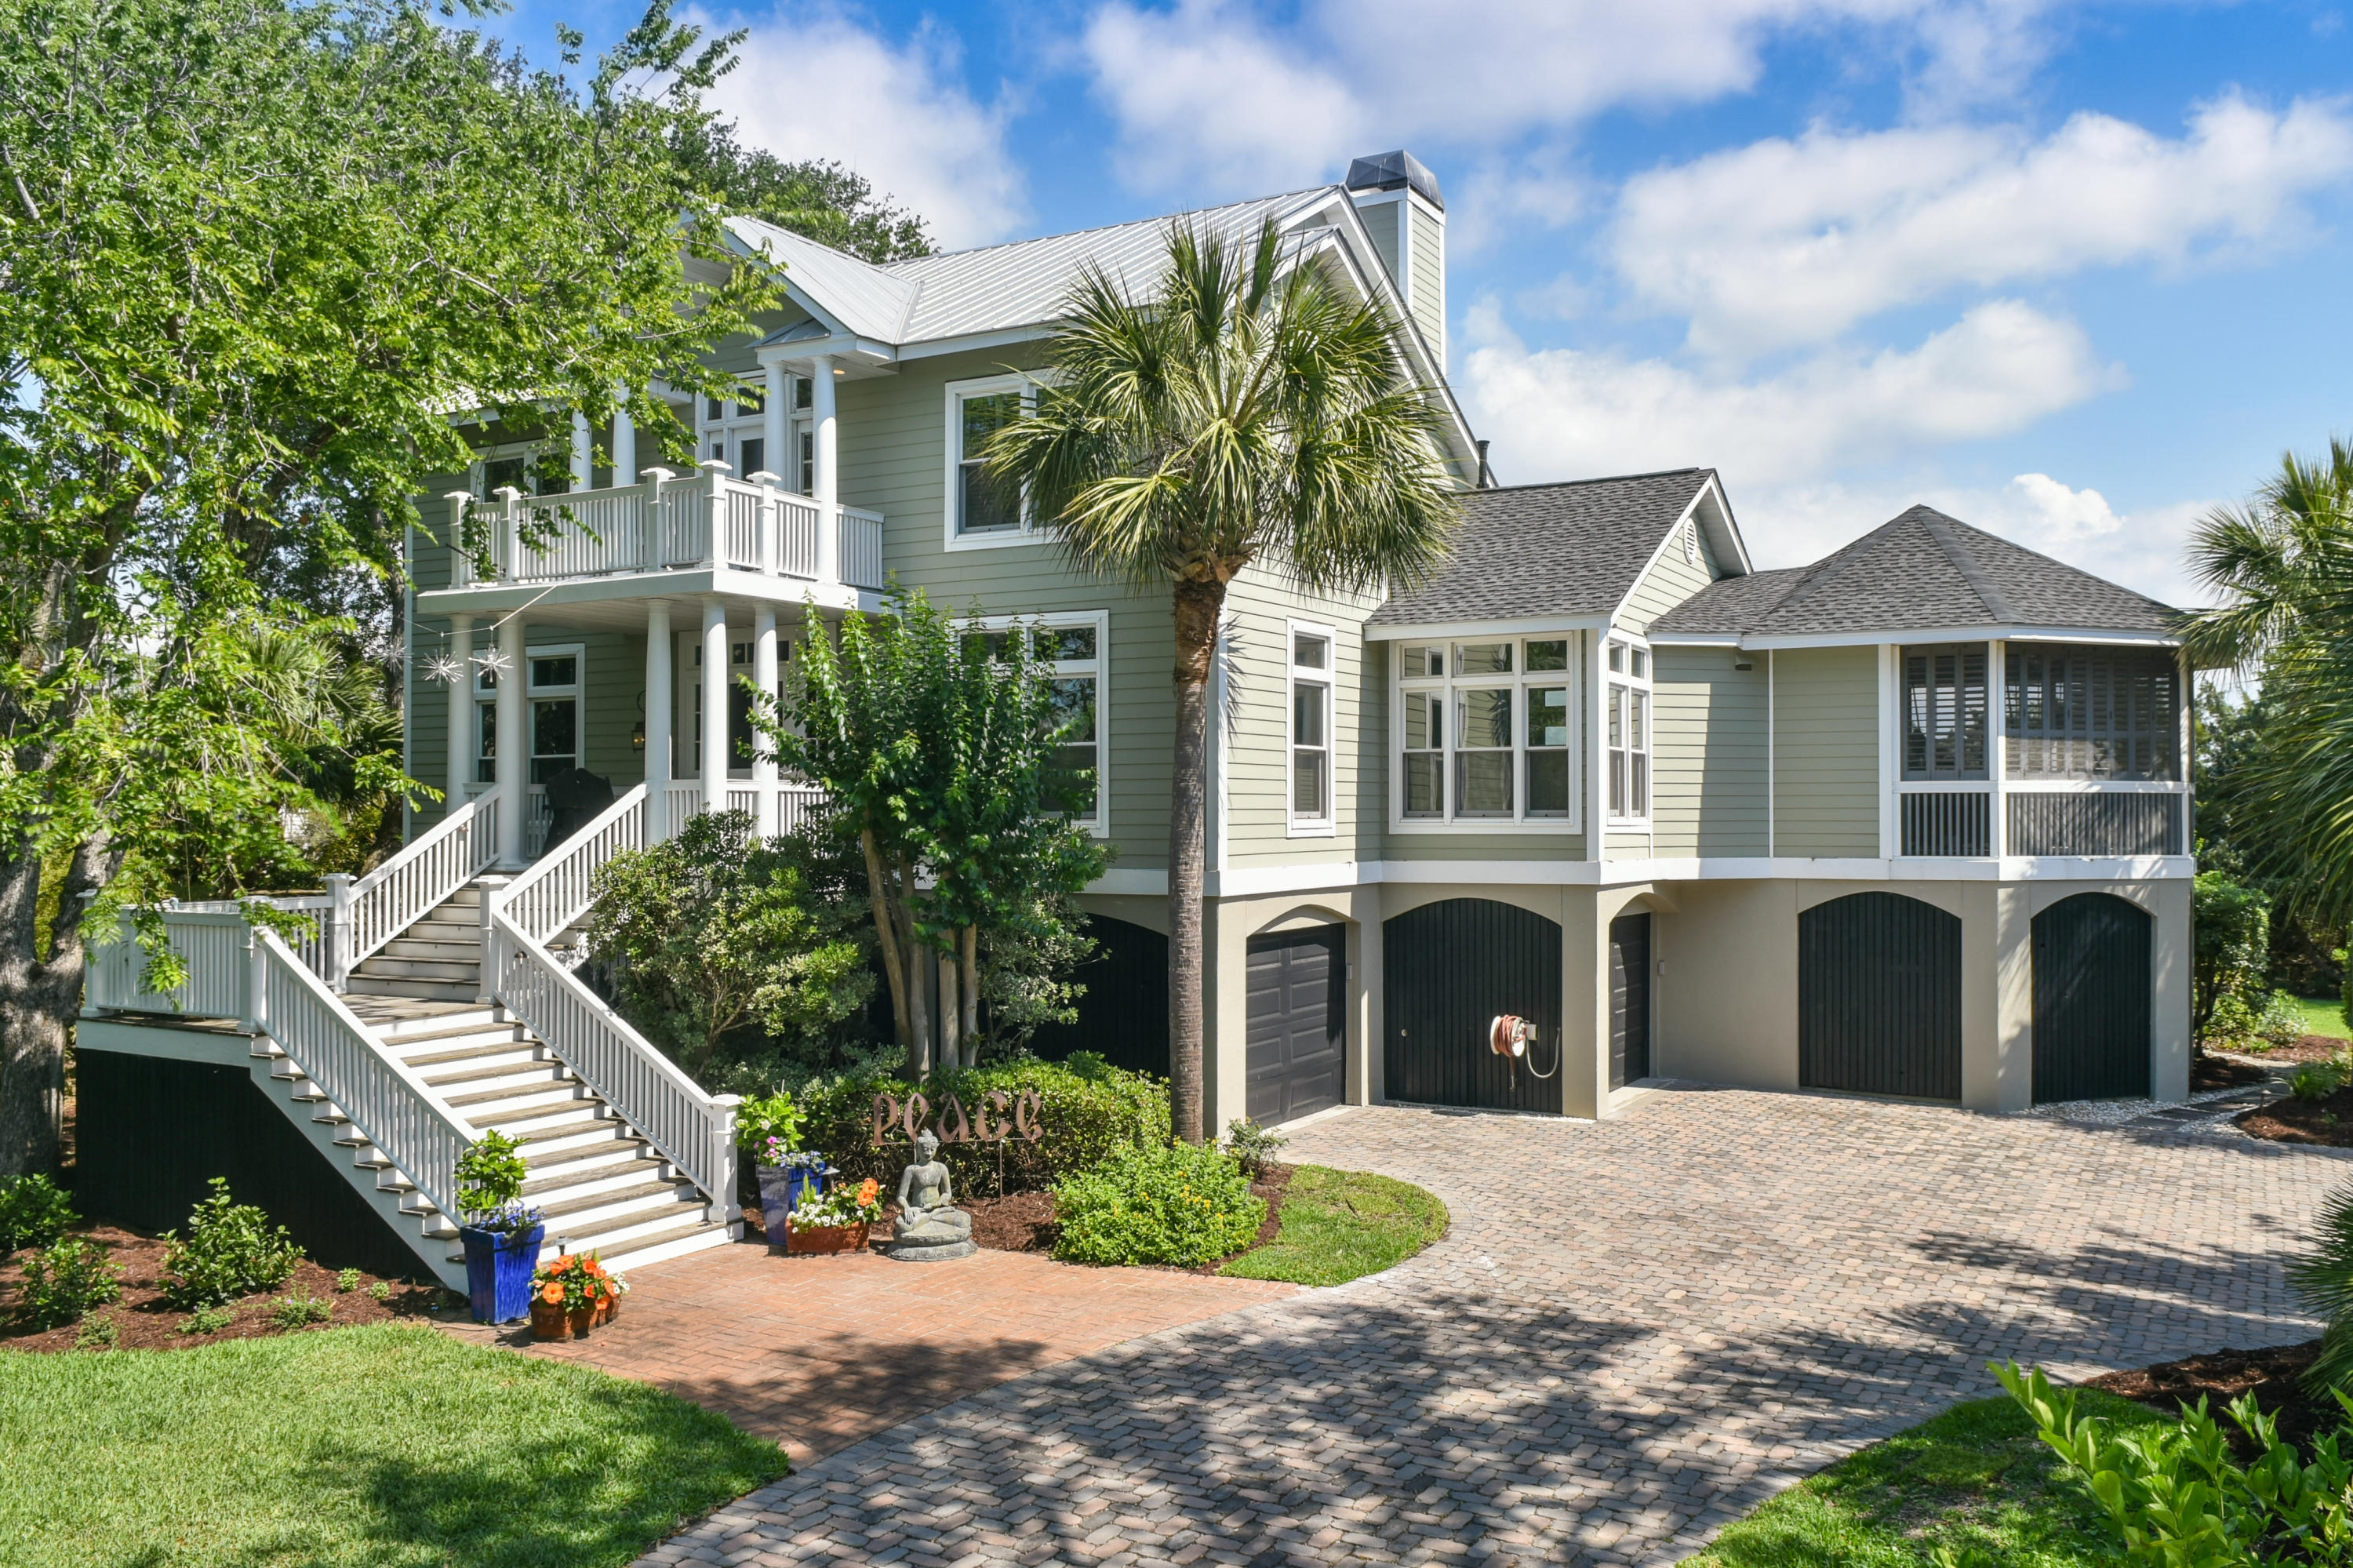 Sullivans Island Homes For Sale - 405 Station 12, Sullivans Island, SC - 60